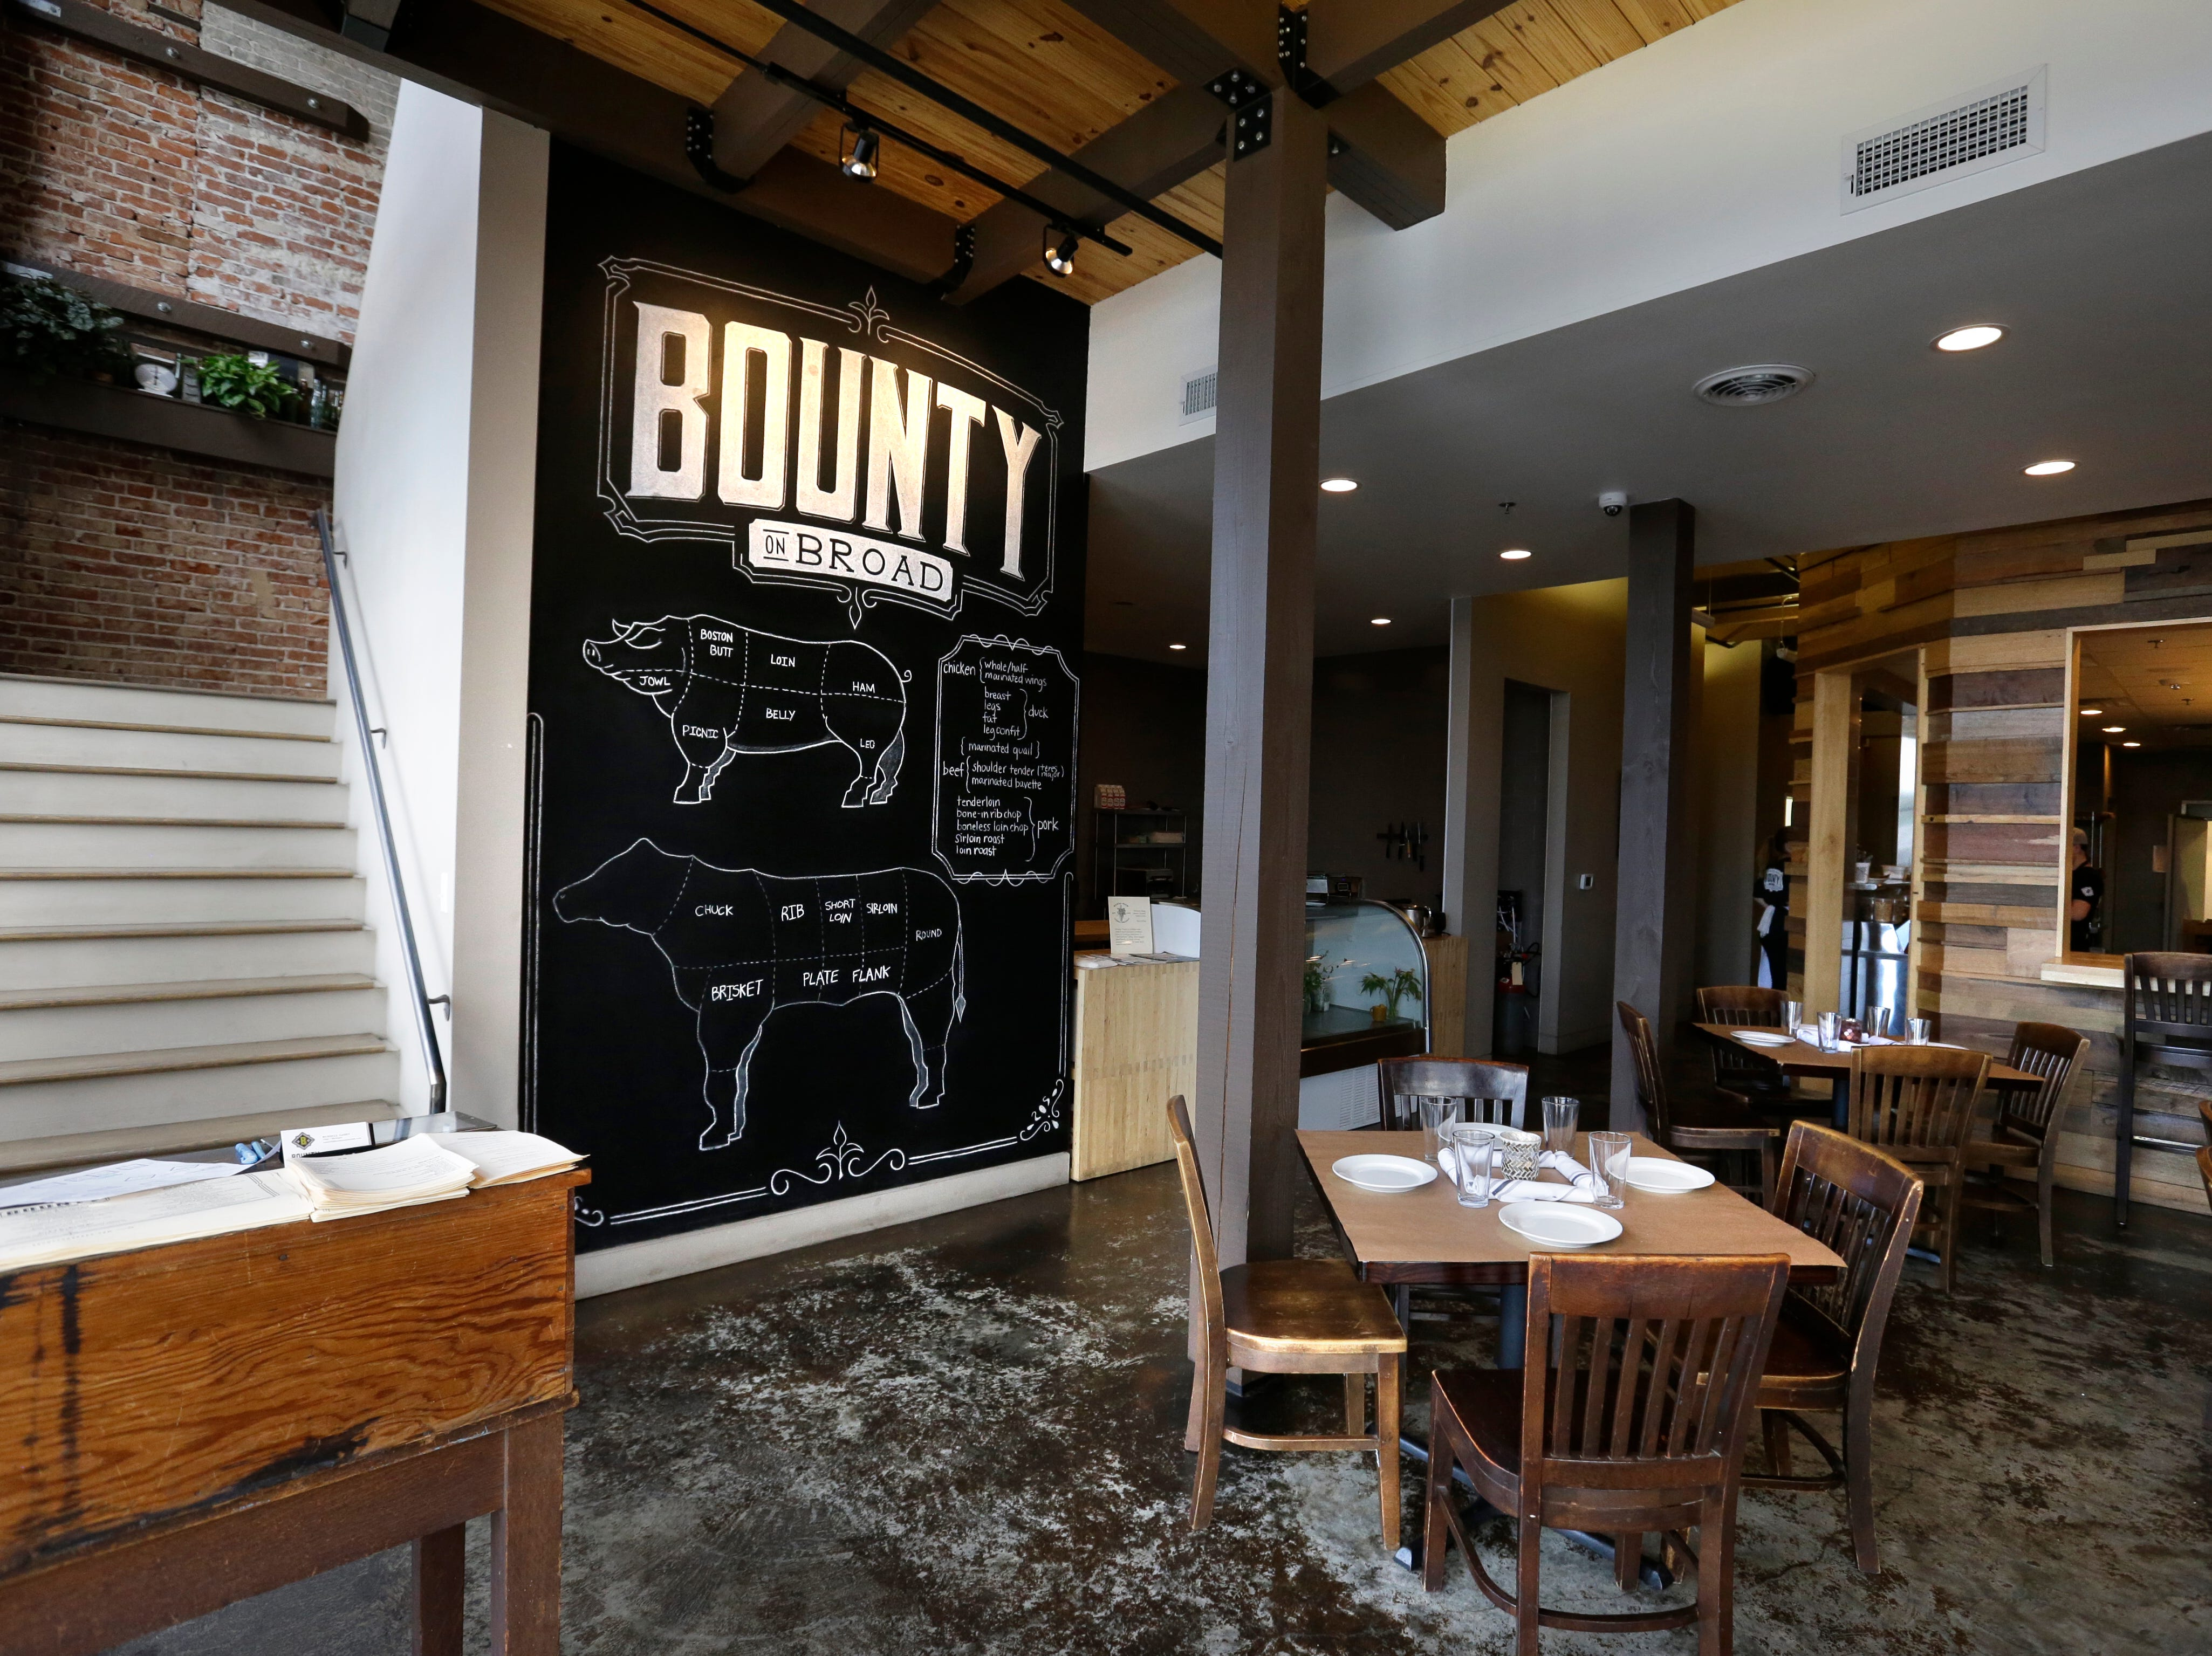 August 5, 2016- The downstairs dining room at Bounty on Broad features large-scale chalkboard art. (Nikki Boertman/The Commercial Appeal)